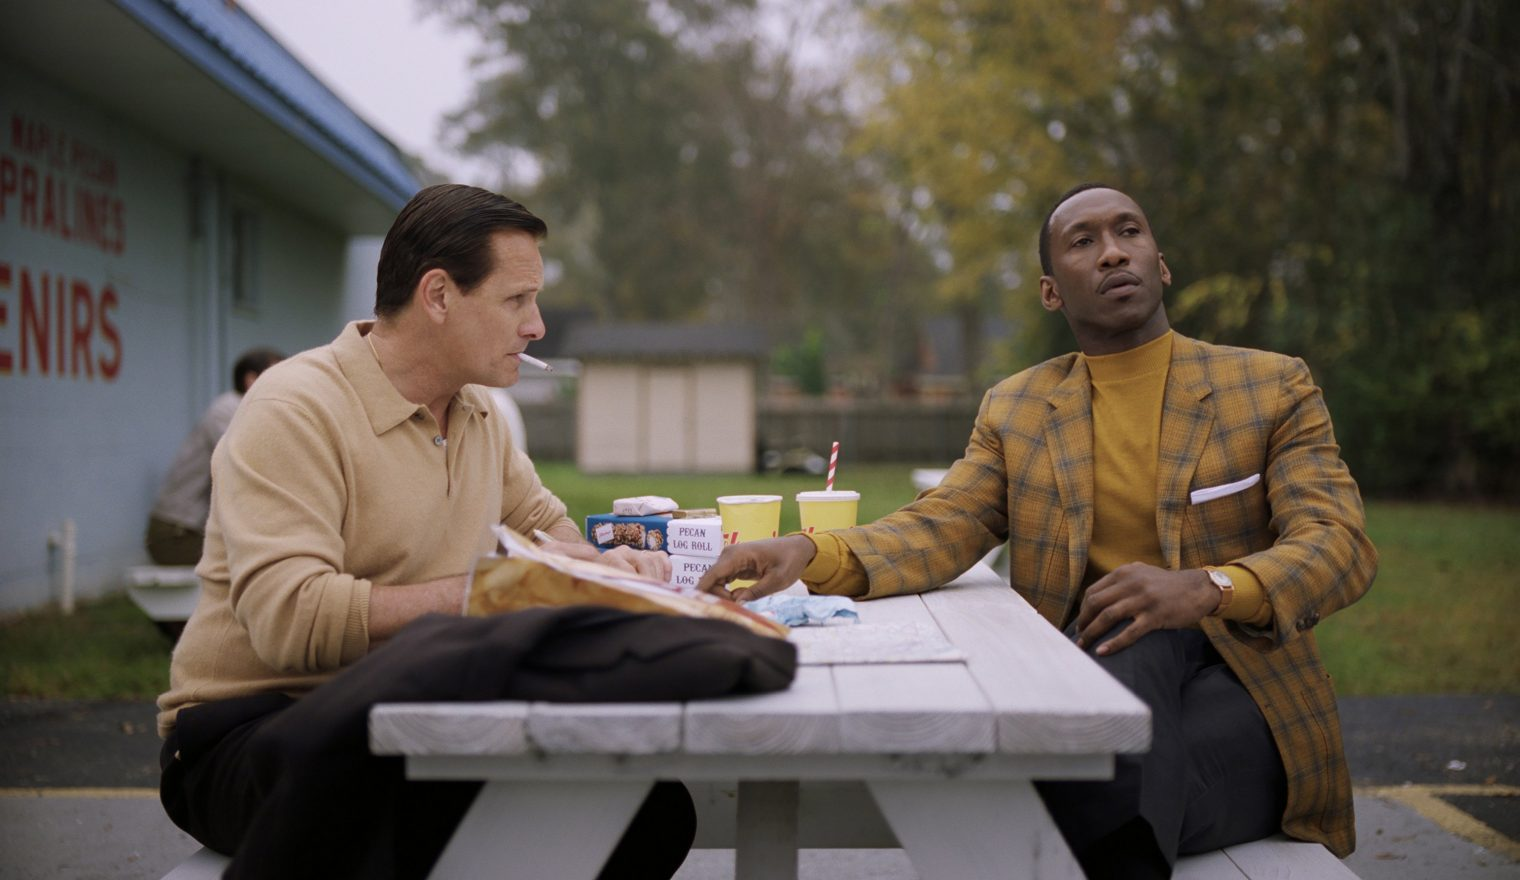 Viggo Mortensen as Tony Vallelonga and Mahershala Ali as Dr. Donald Shirley in Green Book, directed by Peter Farrelly. In this still, Viggo (a white man) sits on the left of a picnic table and Ali (a black man) sits at the right. They are both drinking fountain drinks with straws and Viggo is smoking a cigarette which hangs out of his mouth.